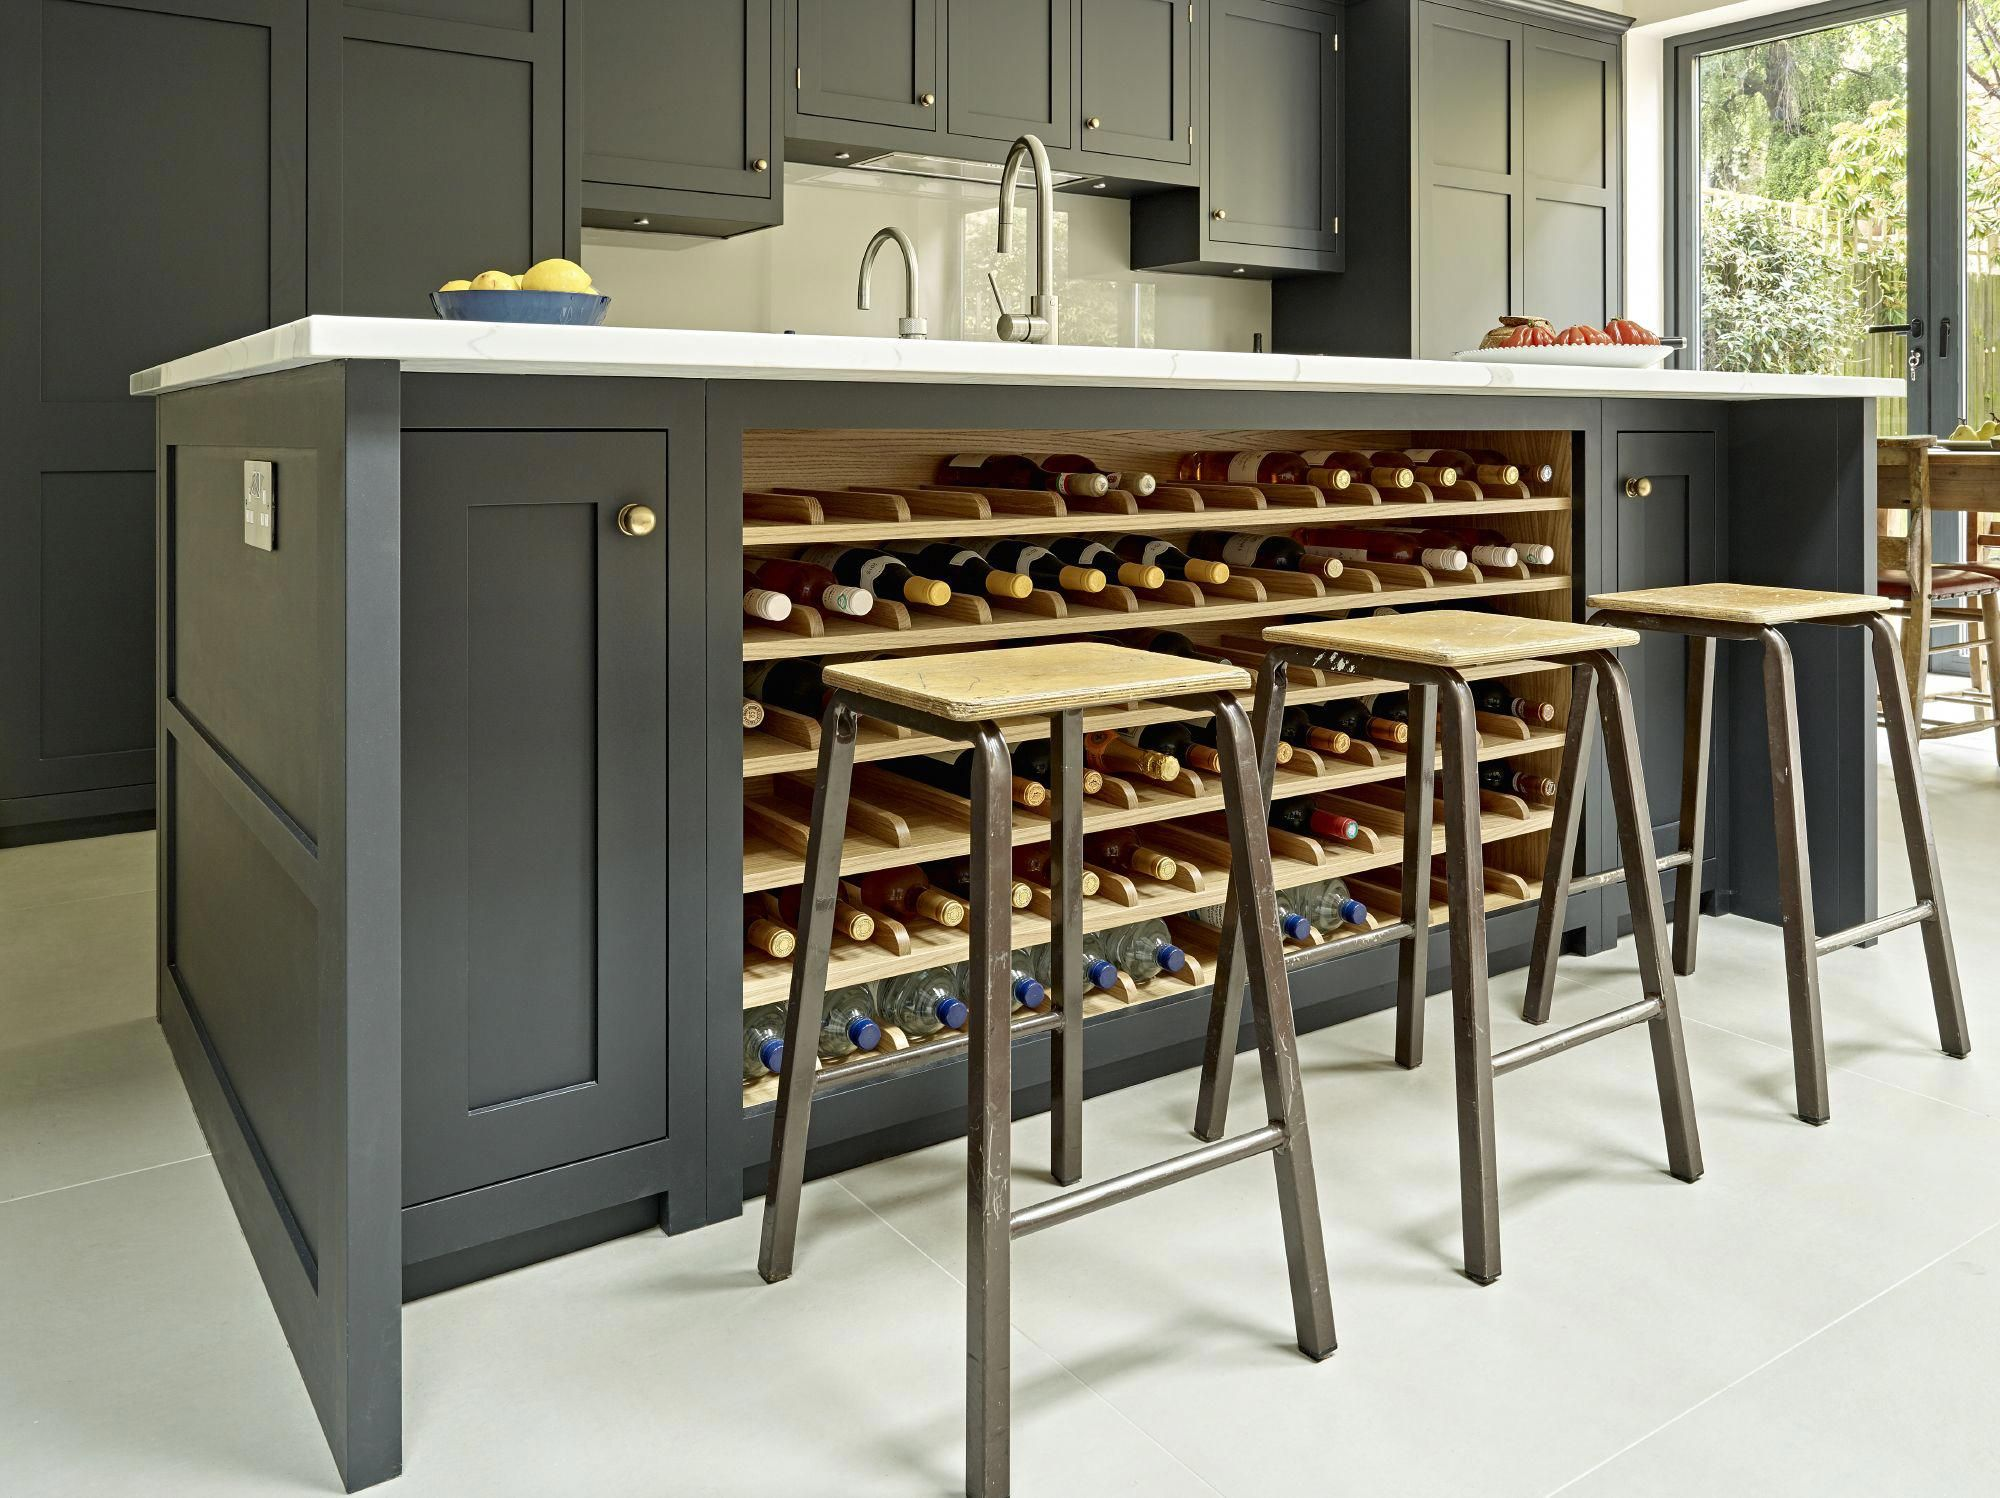 Grey Black Kitchen Island Design With Integrated Wine Rack In Oak Large Bespoke Island With Breakfast Bar Seating And Grey Ca Kitchen Design Kitchen Interior Interior Design Kitchen